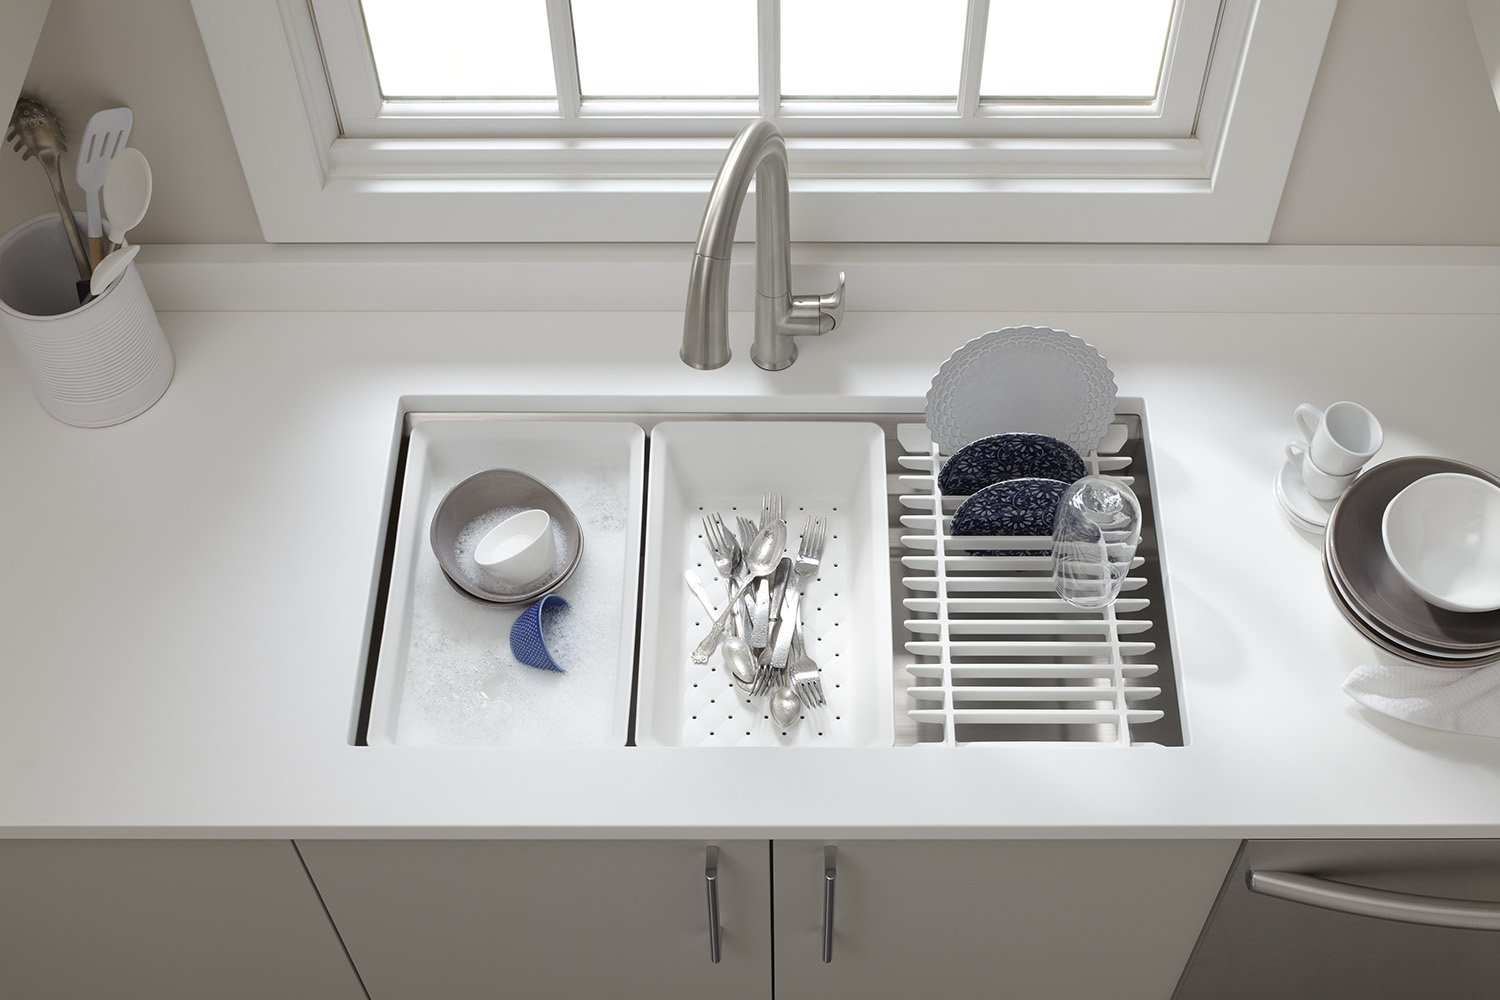 Amazing Kohler Prolific Sink Reviews 2019 Read This Before You Home Interior And Landscaping Ponolsignezvosmurscom